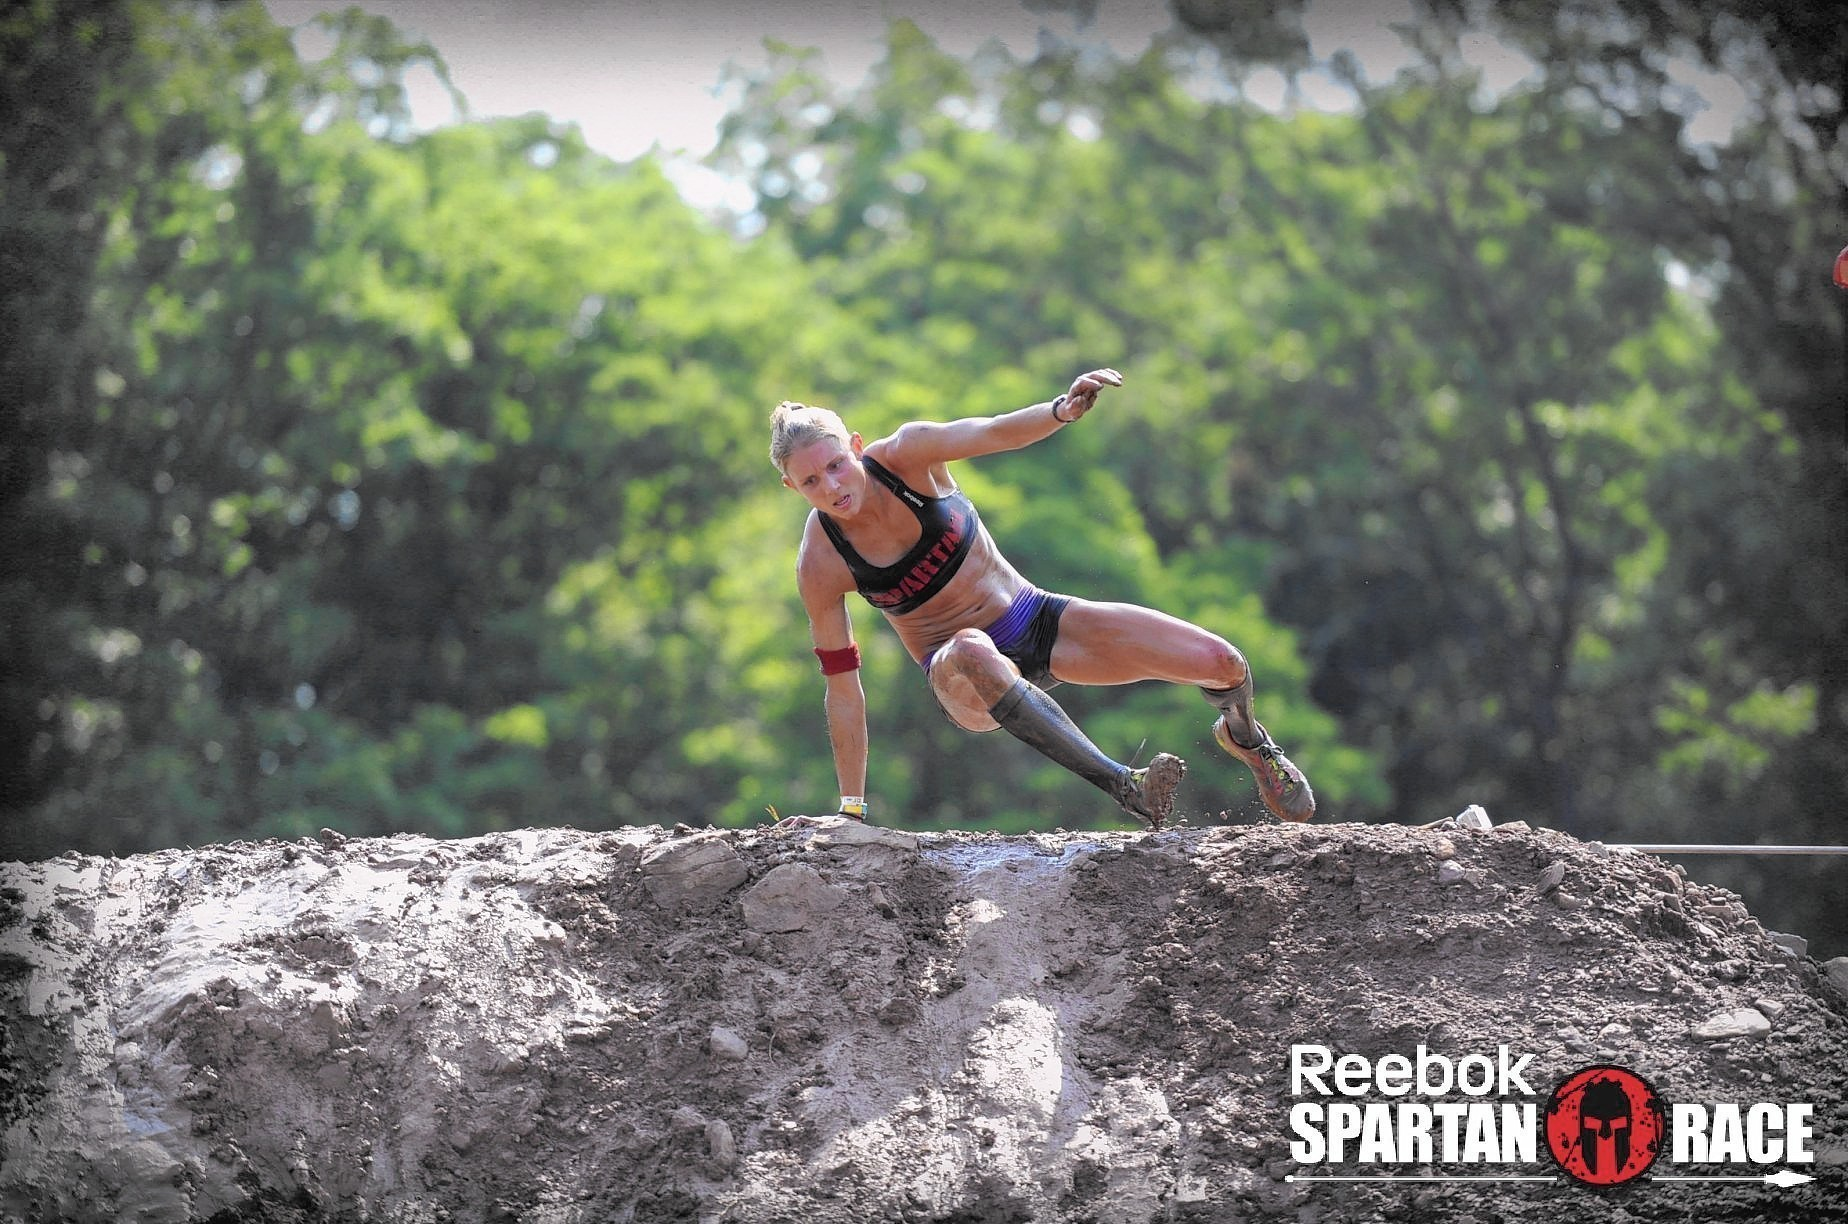 Spartan Race Las Vegas >> Obstacle racer Amelia Boone takes grit to a whole new level - Chicago Tribune